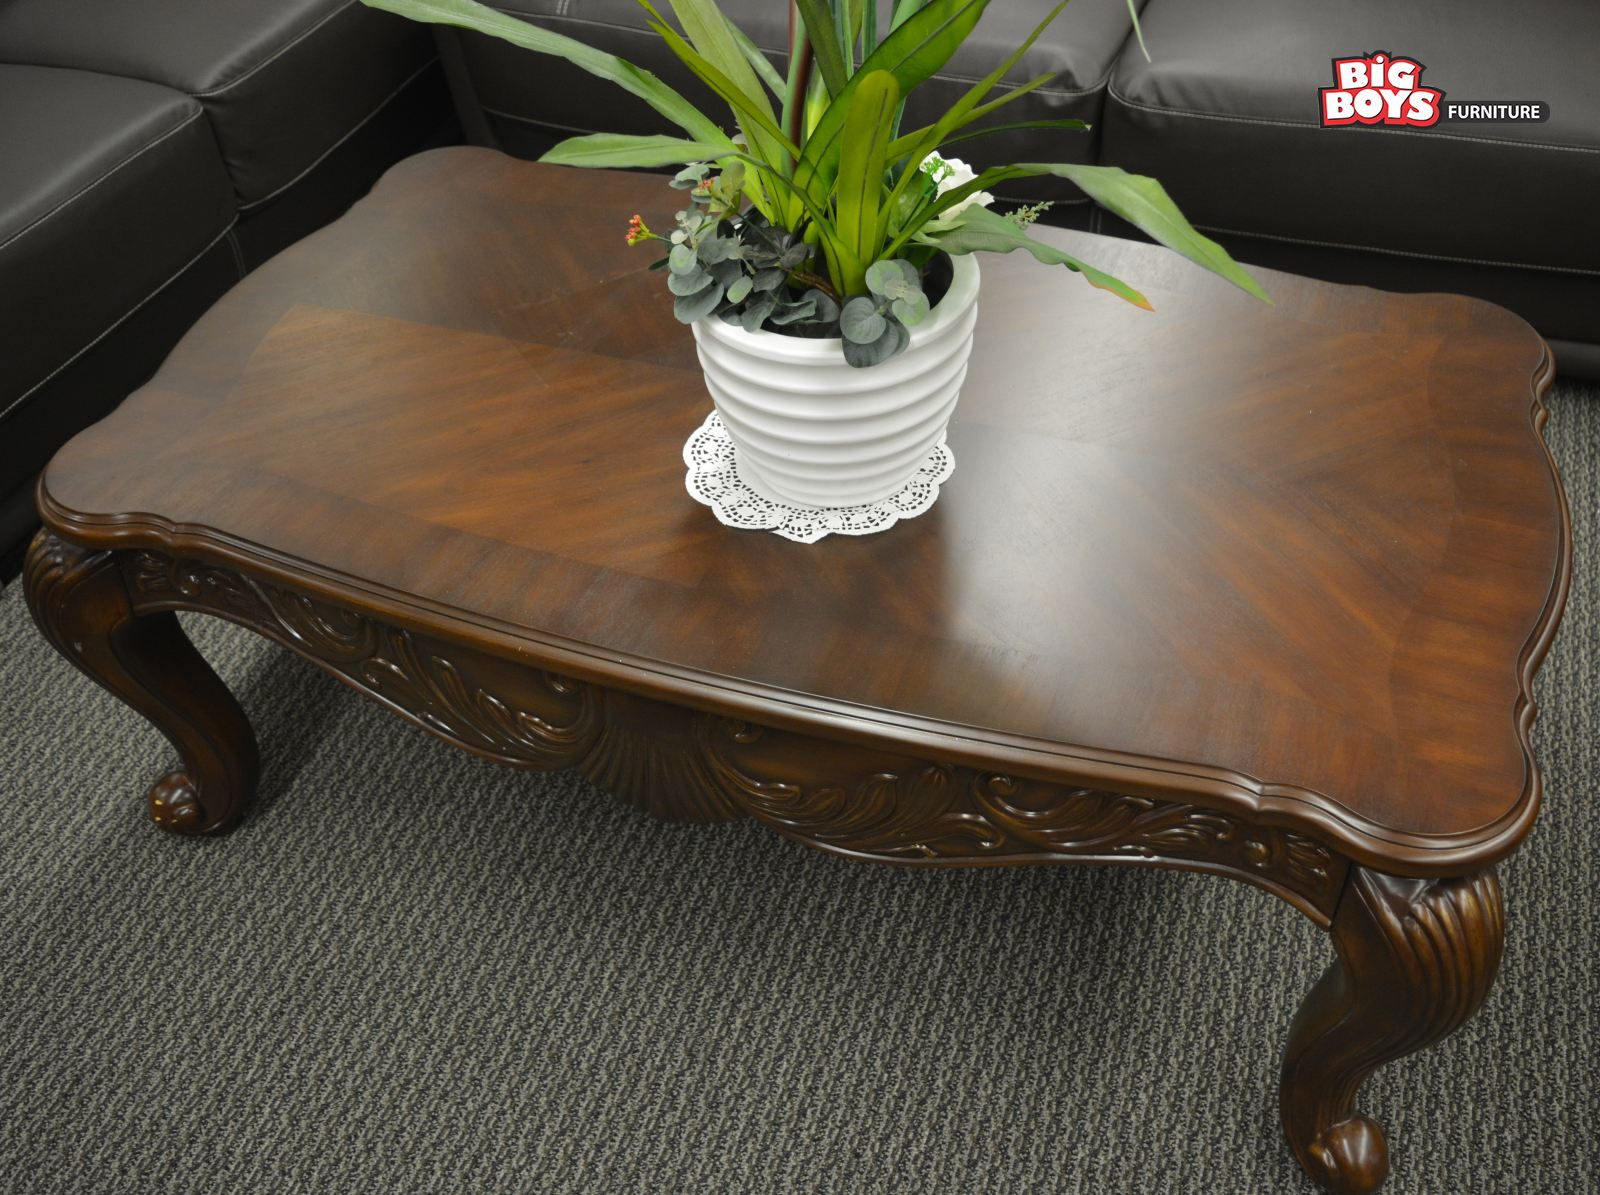 Latest designs of Center tables at discounted price